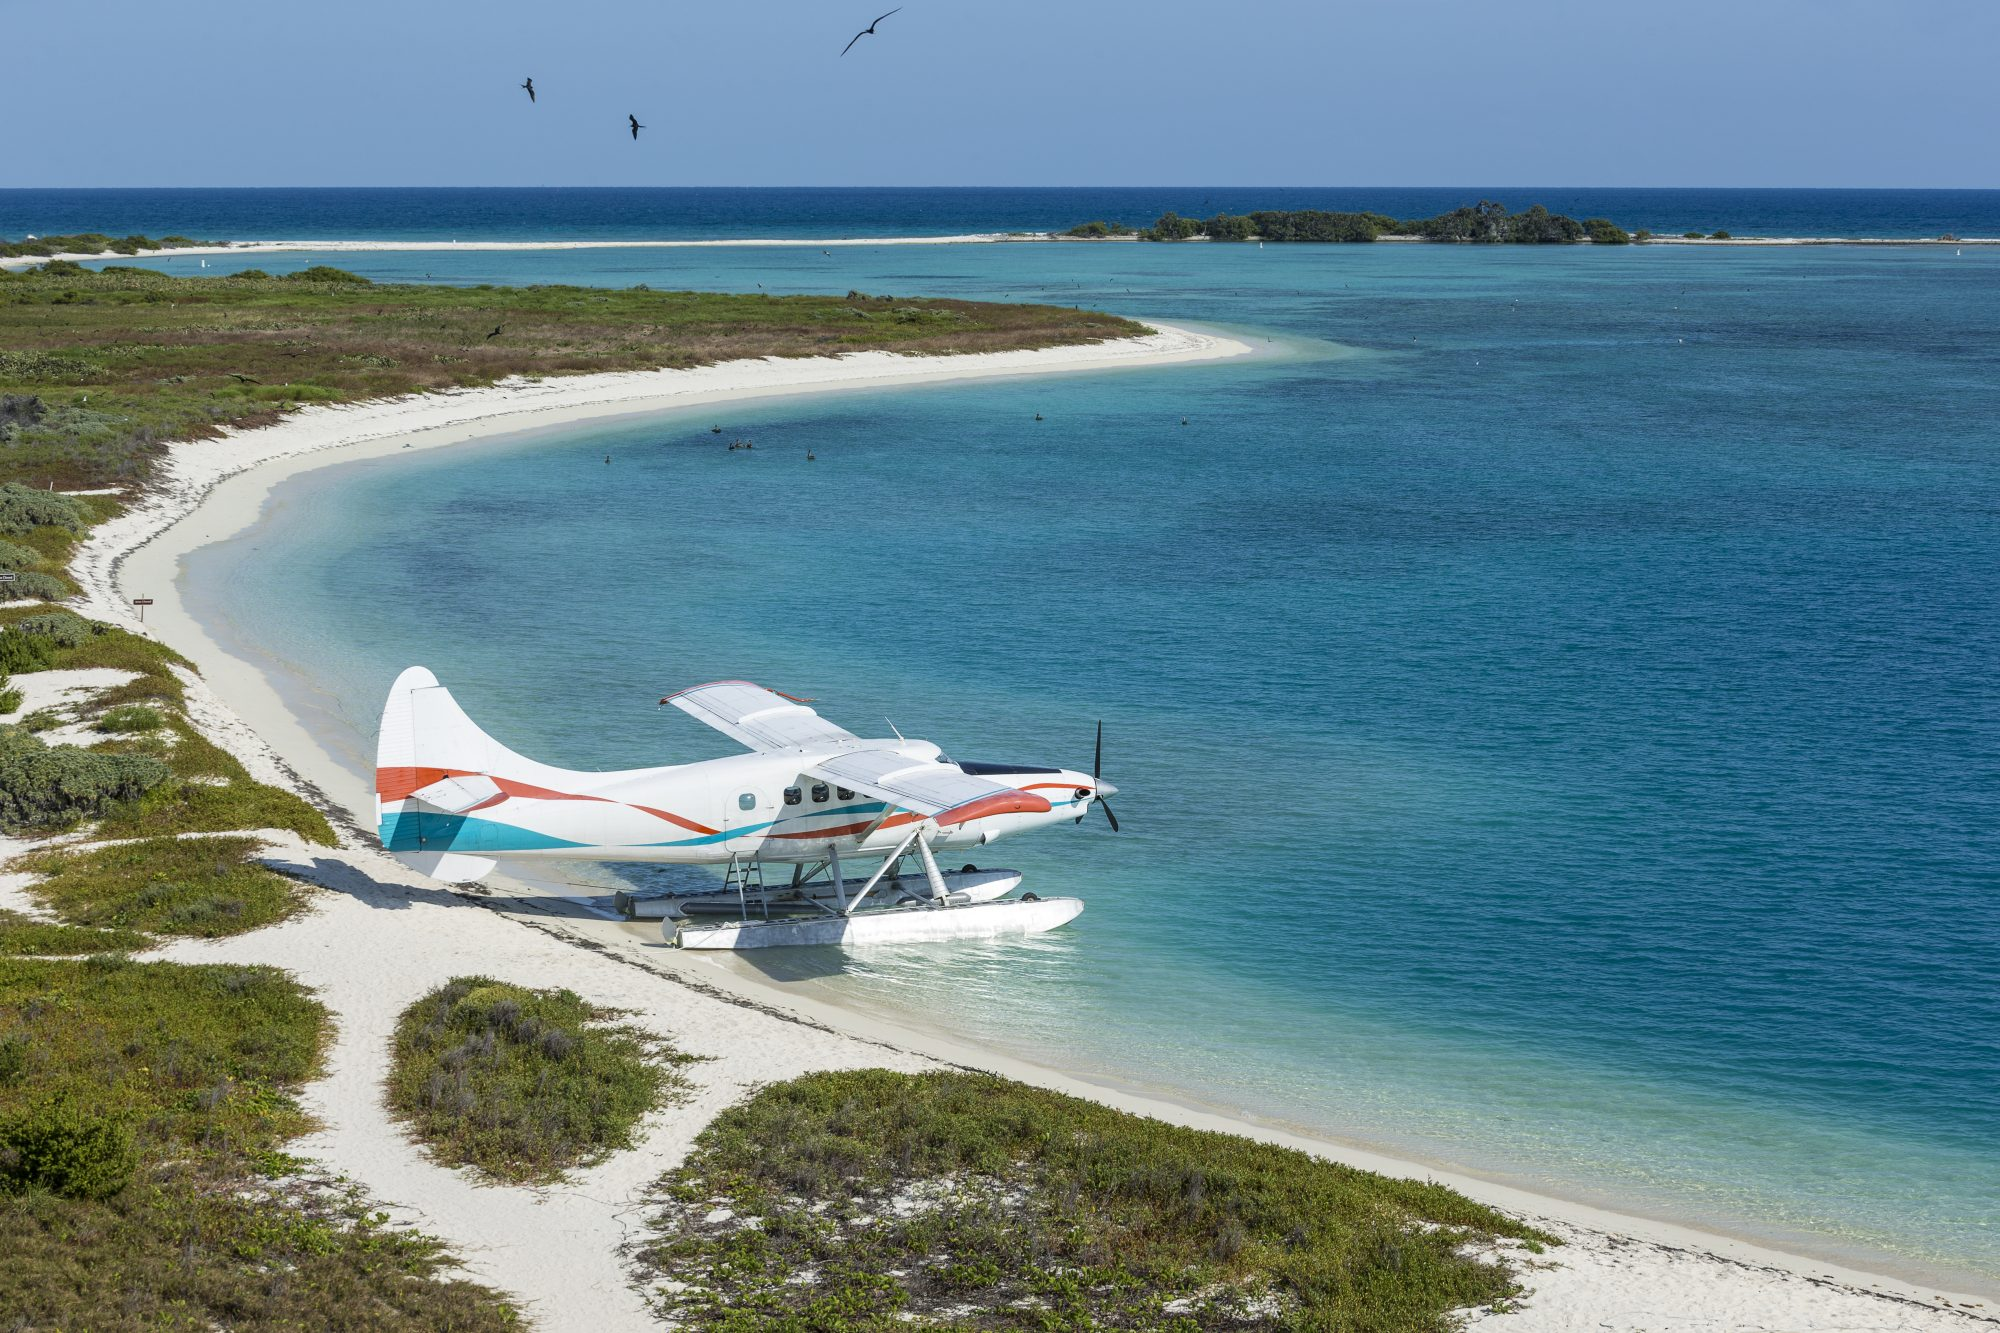 An aerial view of seaplane beach from Fort Jefferson, Dry Tortugas, Florida.